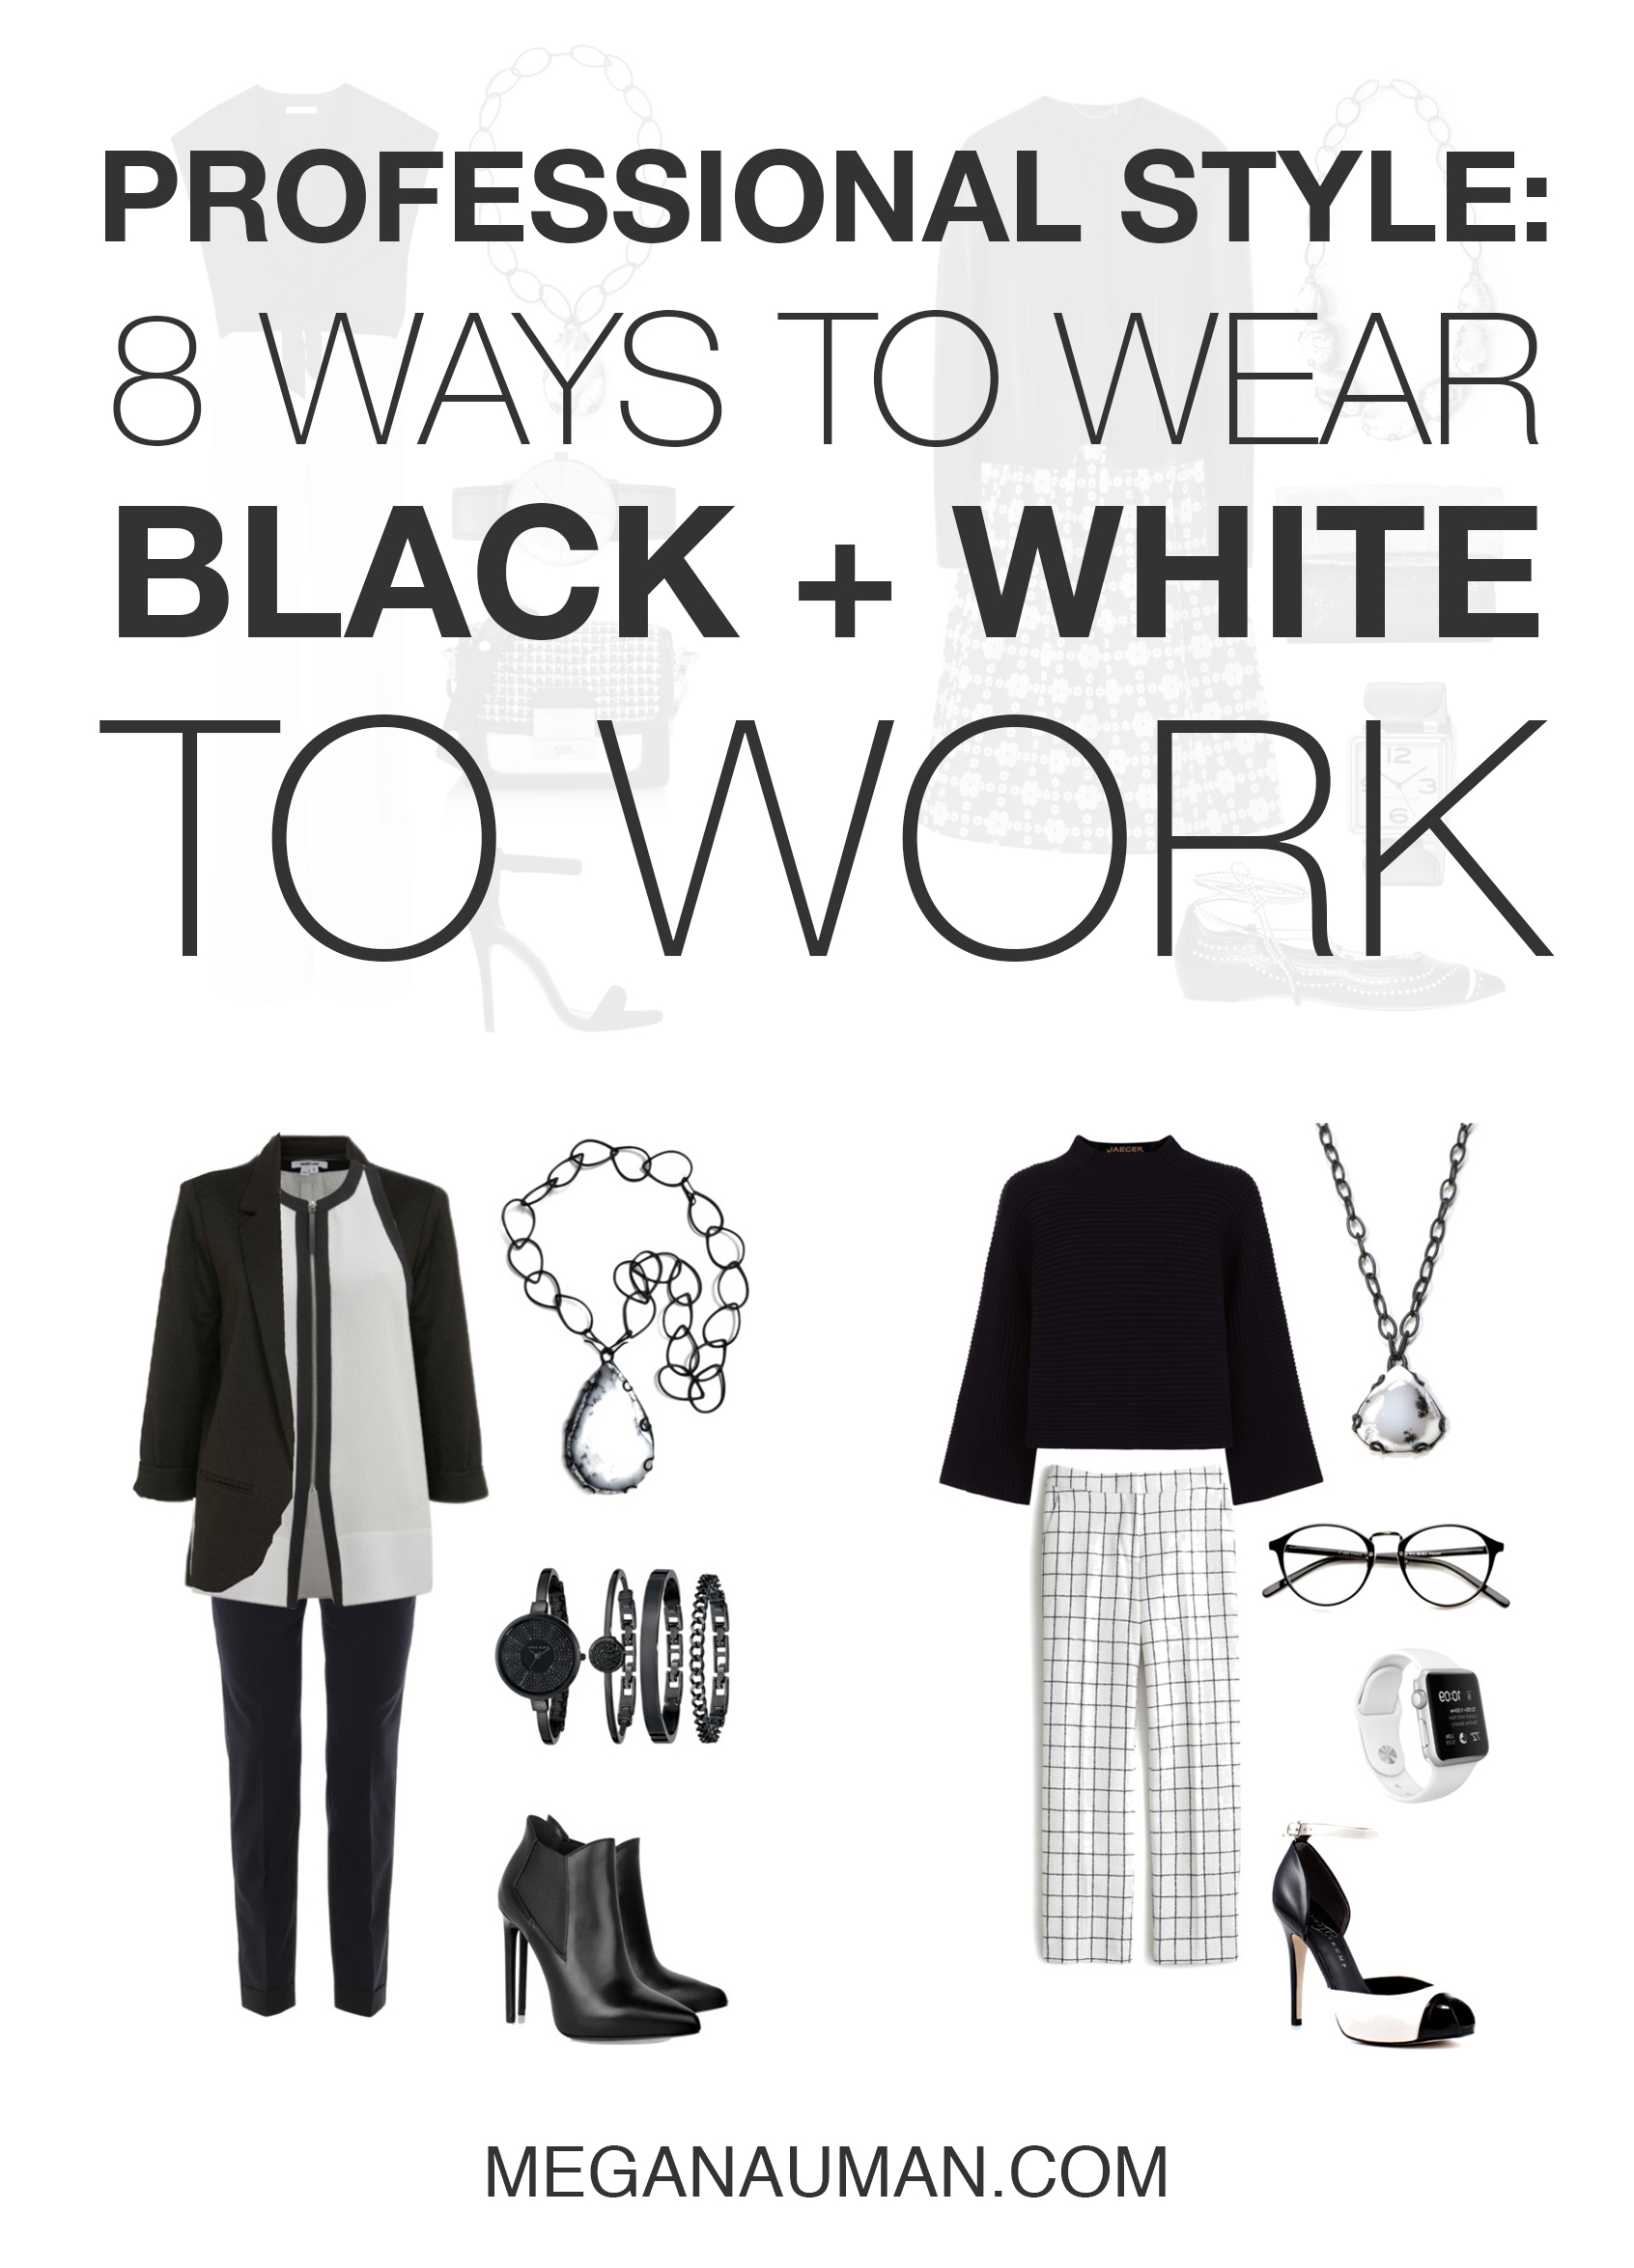 professional style: 8 chic and stylish ways to wear black and white to work // click through for outfit ideas